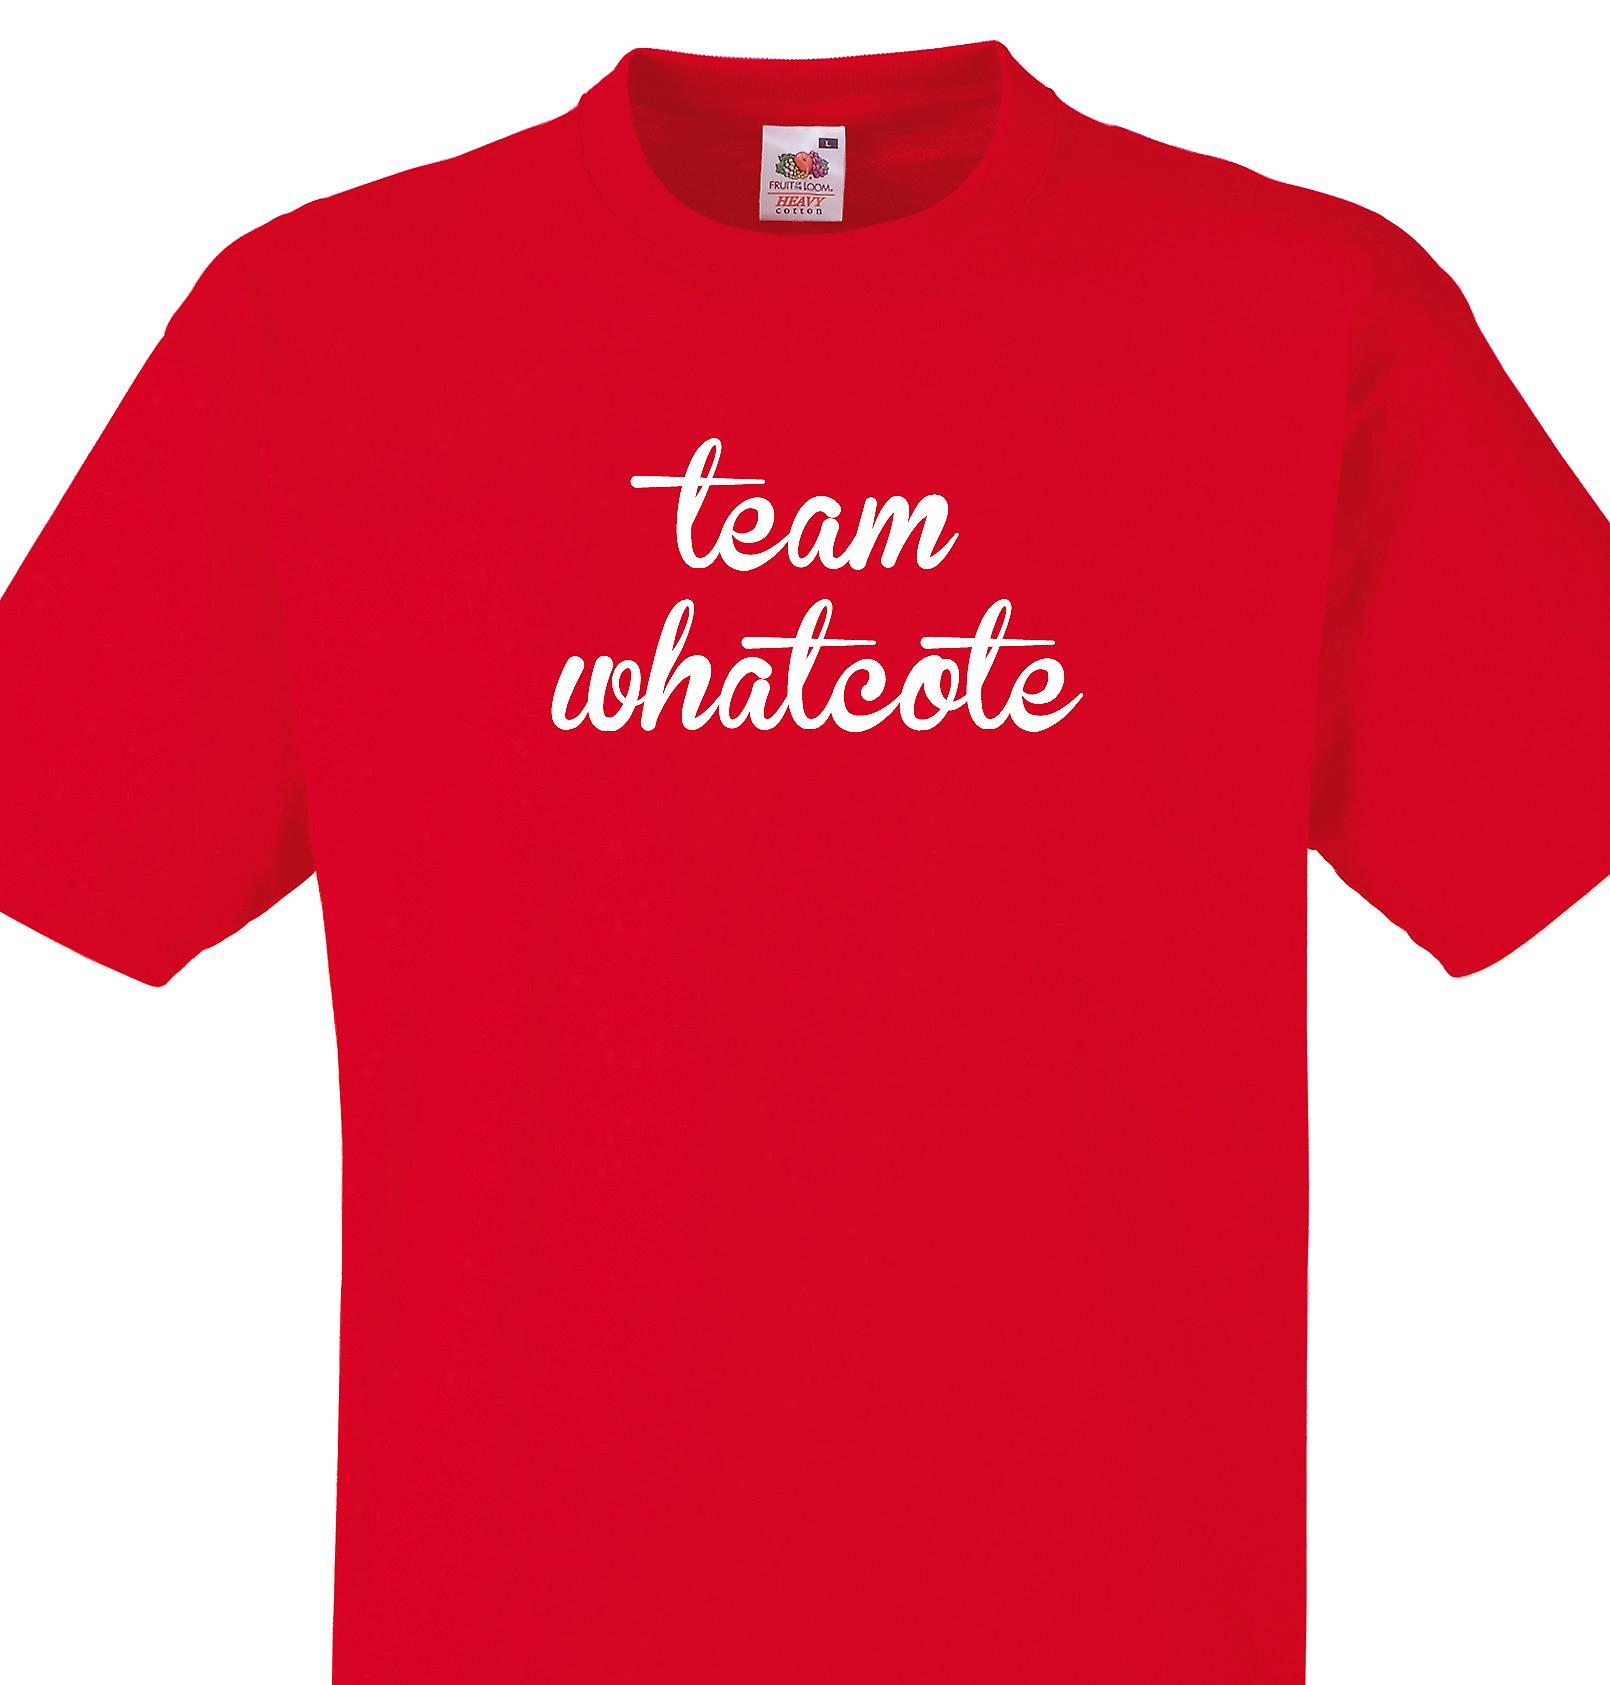 Team Whatcote Red T shirt